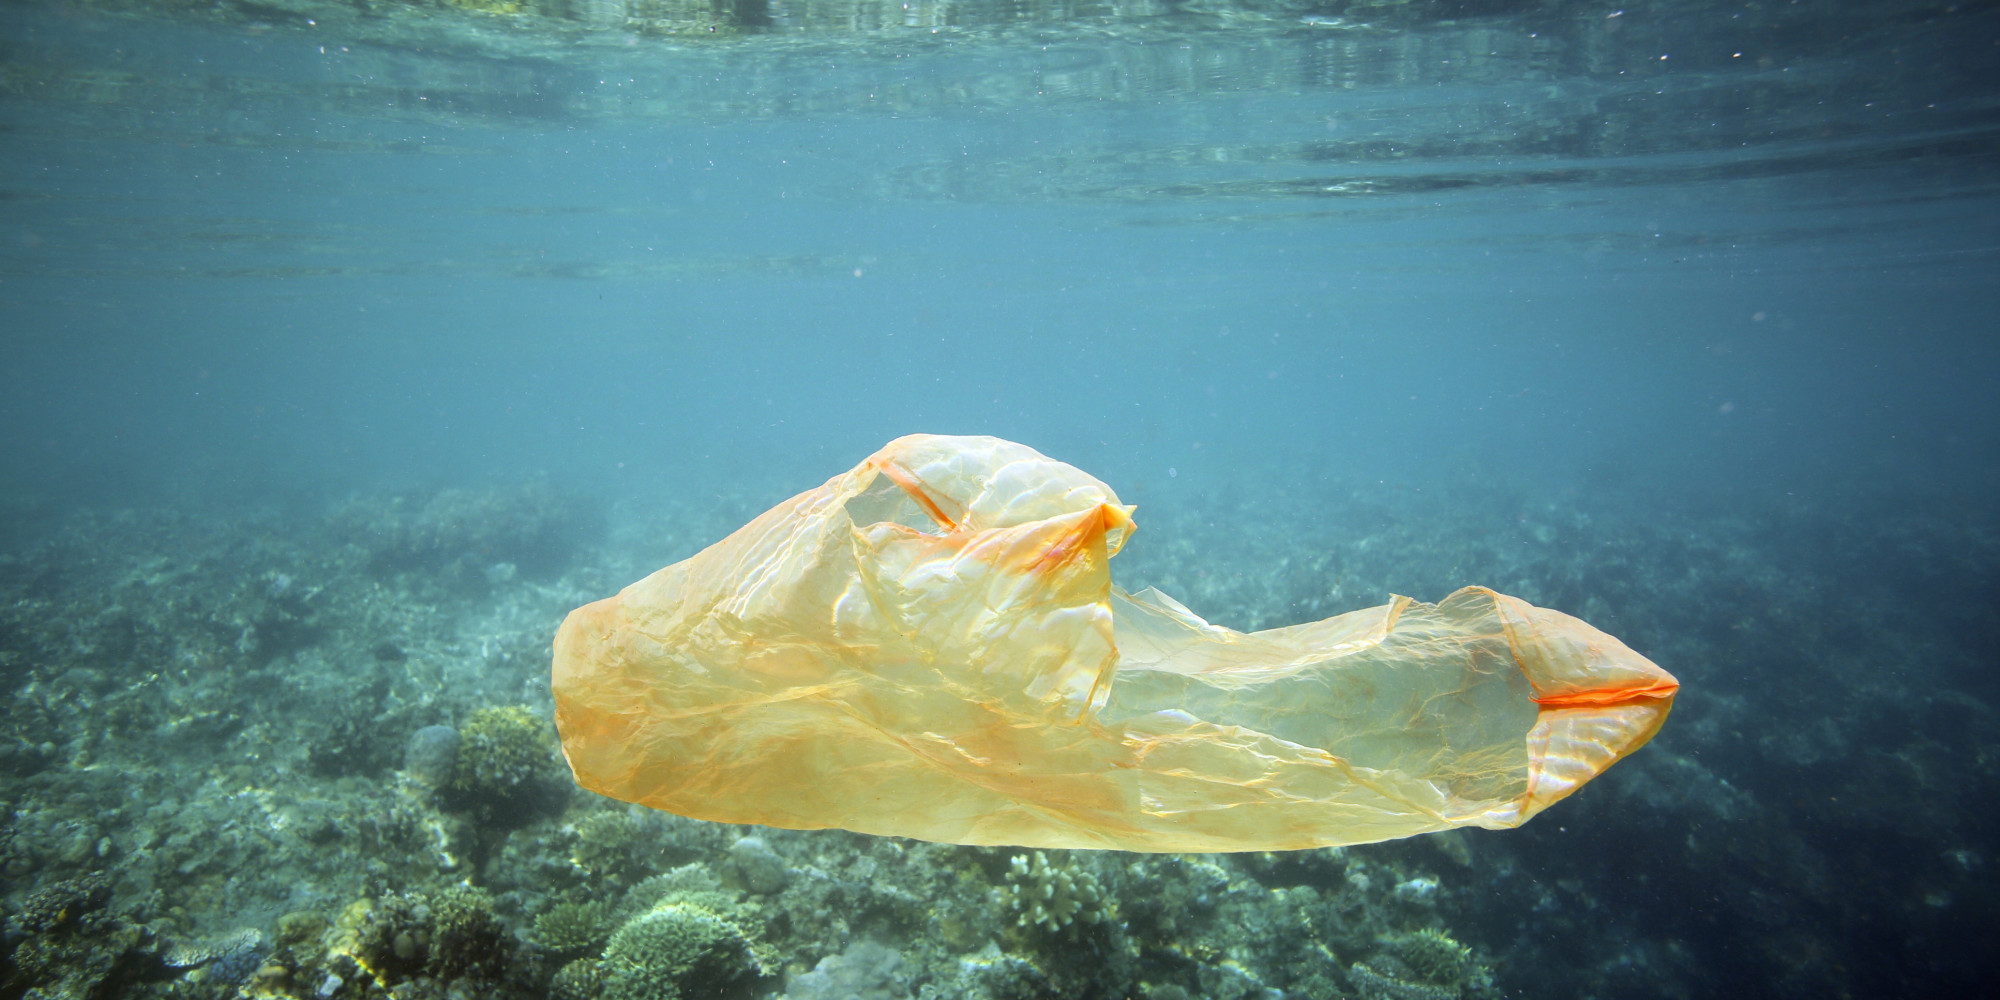 Plastikbank How To Solve The Plastic Pollution Problem And Poverty At